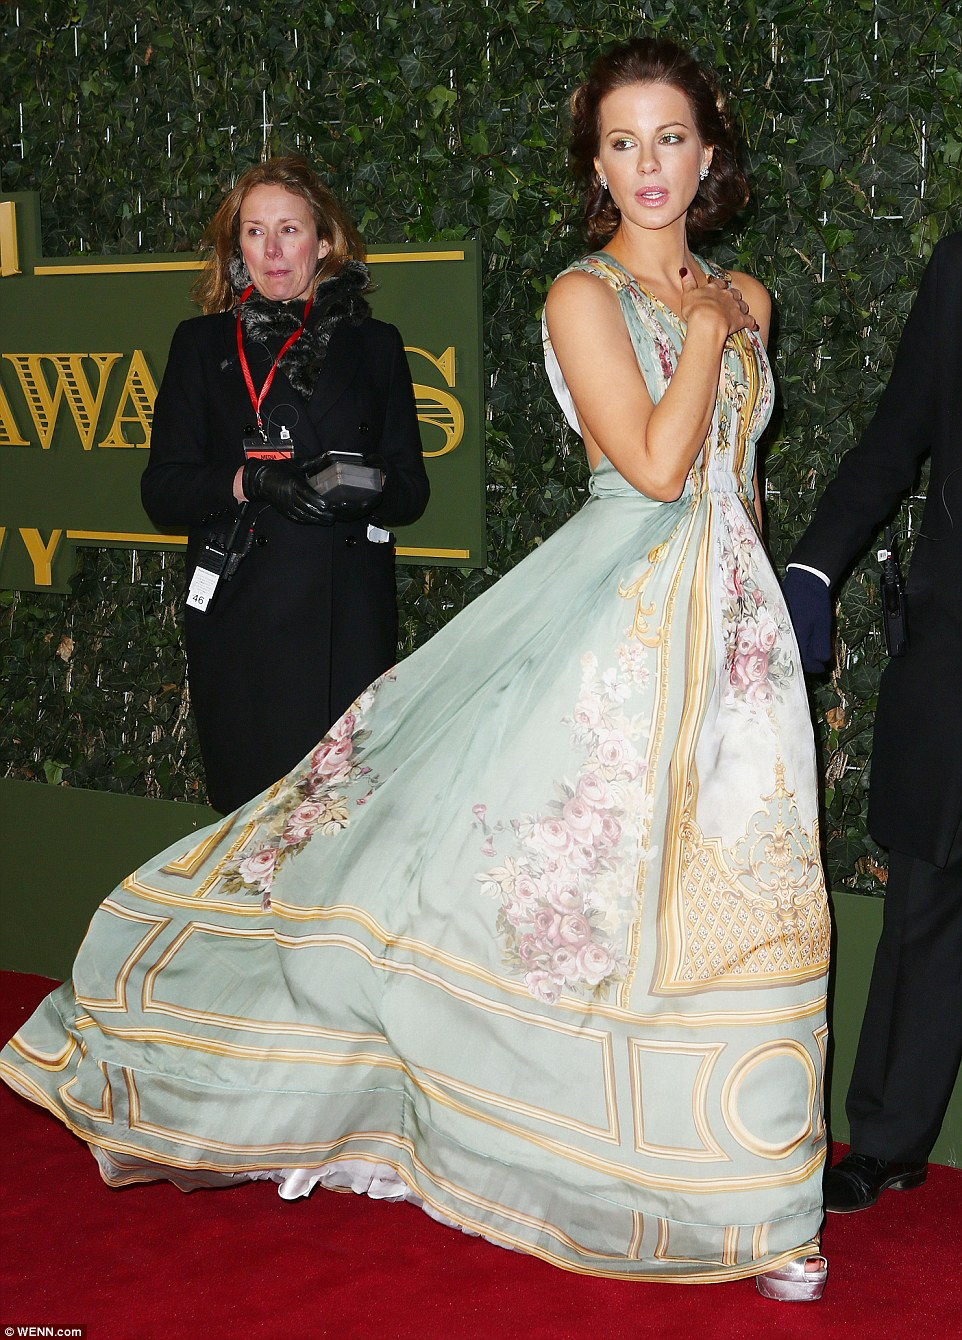 Kate's stunning gown is from the Alberta Ferretti Limited Edition Fall 2015 Couture collection and the baroque floral print looks like it has been lifted straight from the walls of a palace